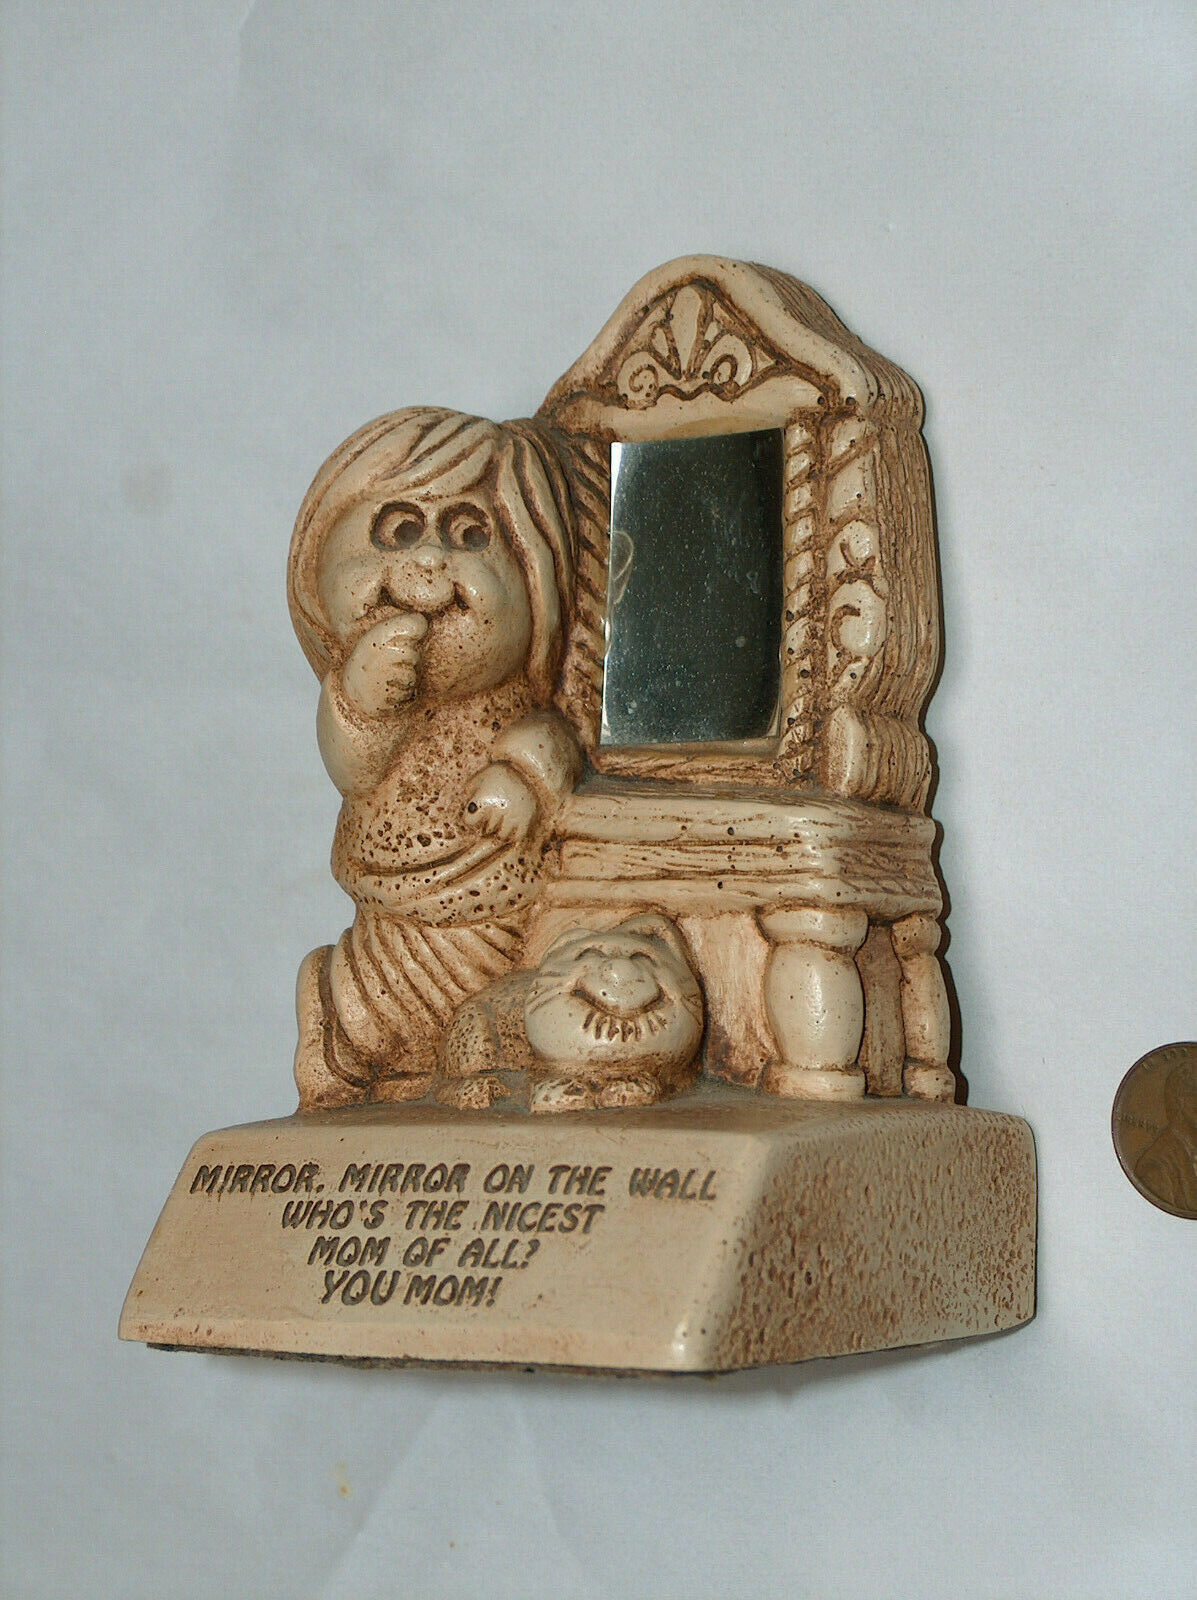 VTG PAULA 1972 Mirror On The Wall Who's Nicest Of All, YOU MOM! Wood Figure W312